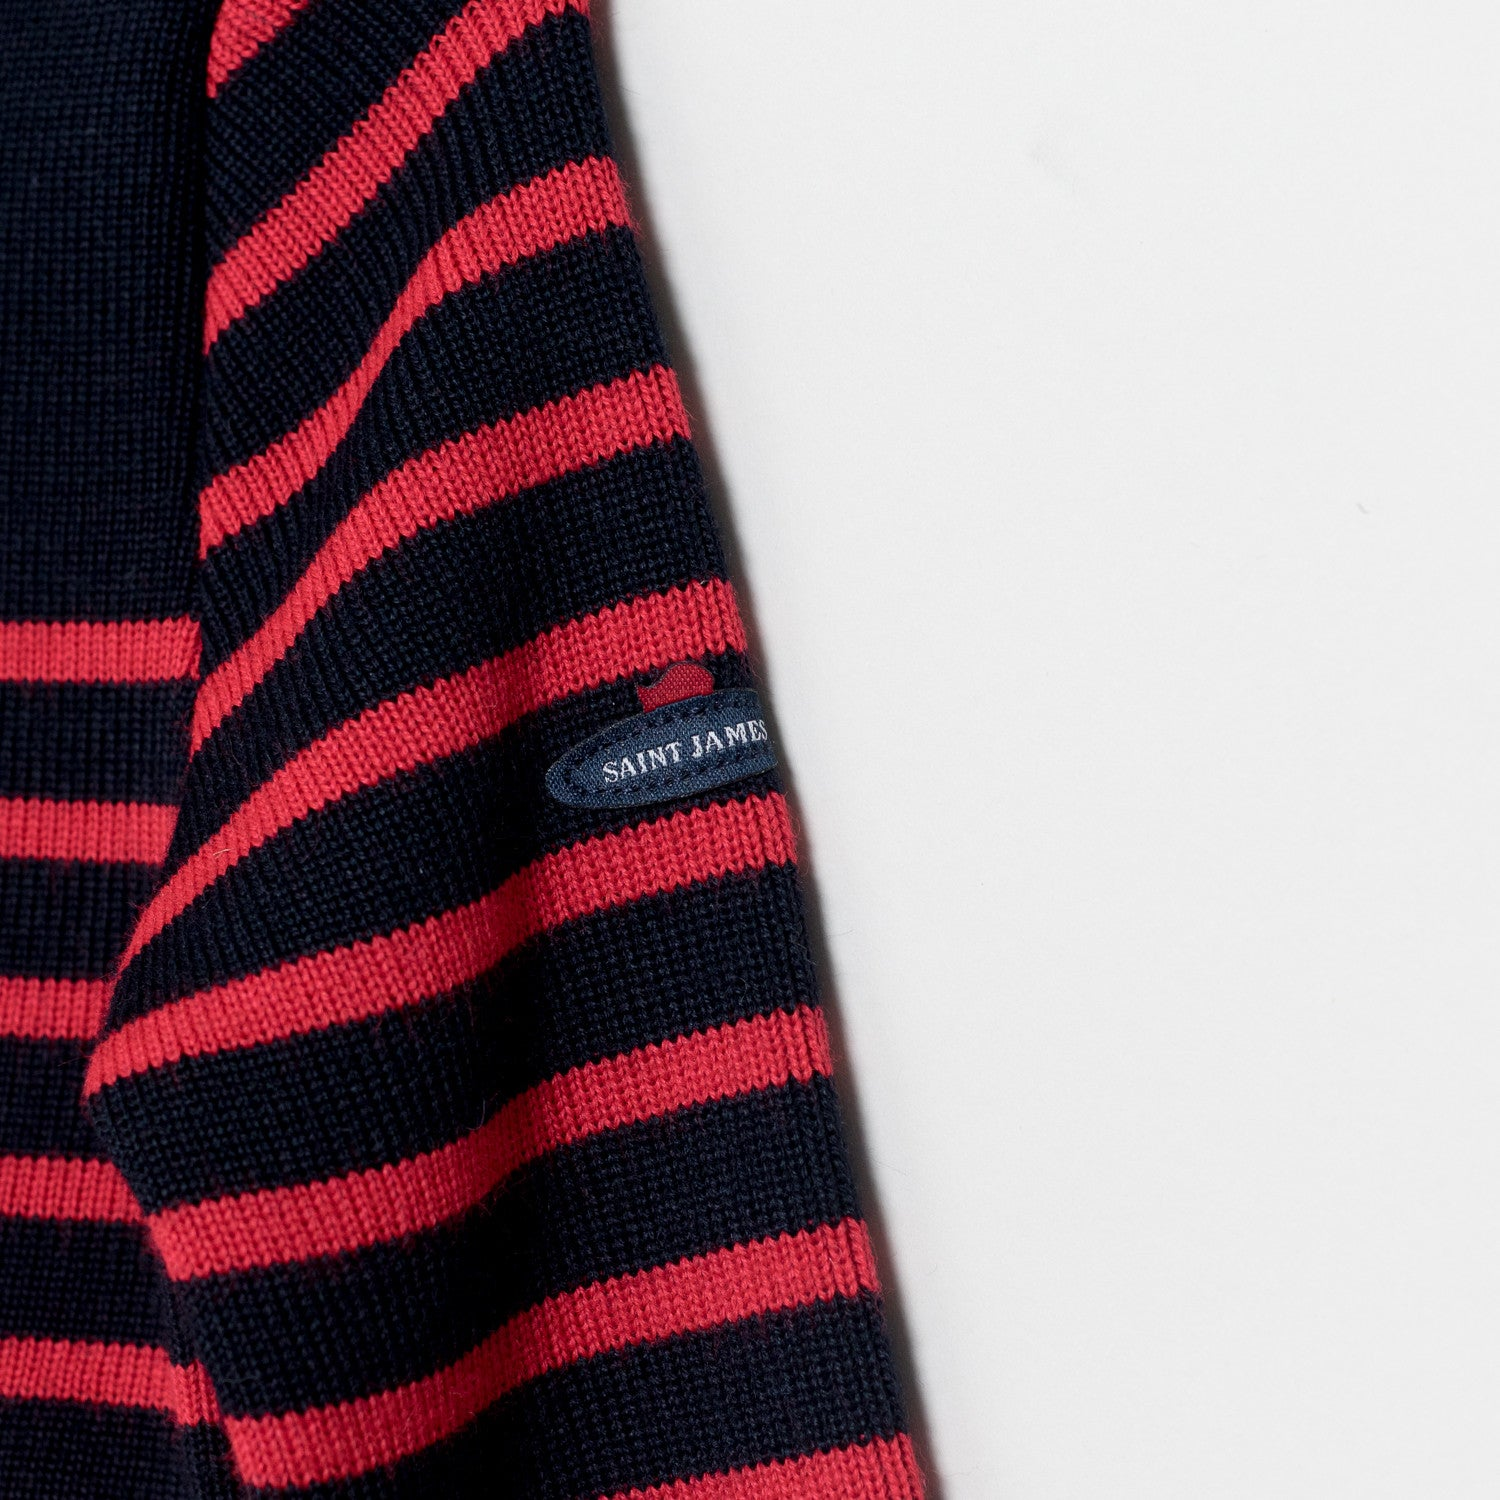 Moussaillon navy/red - KID - 3